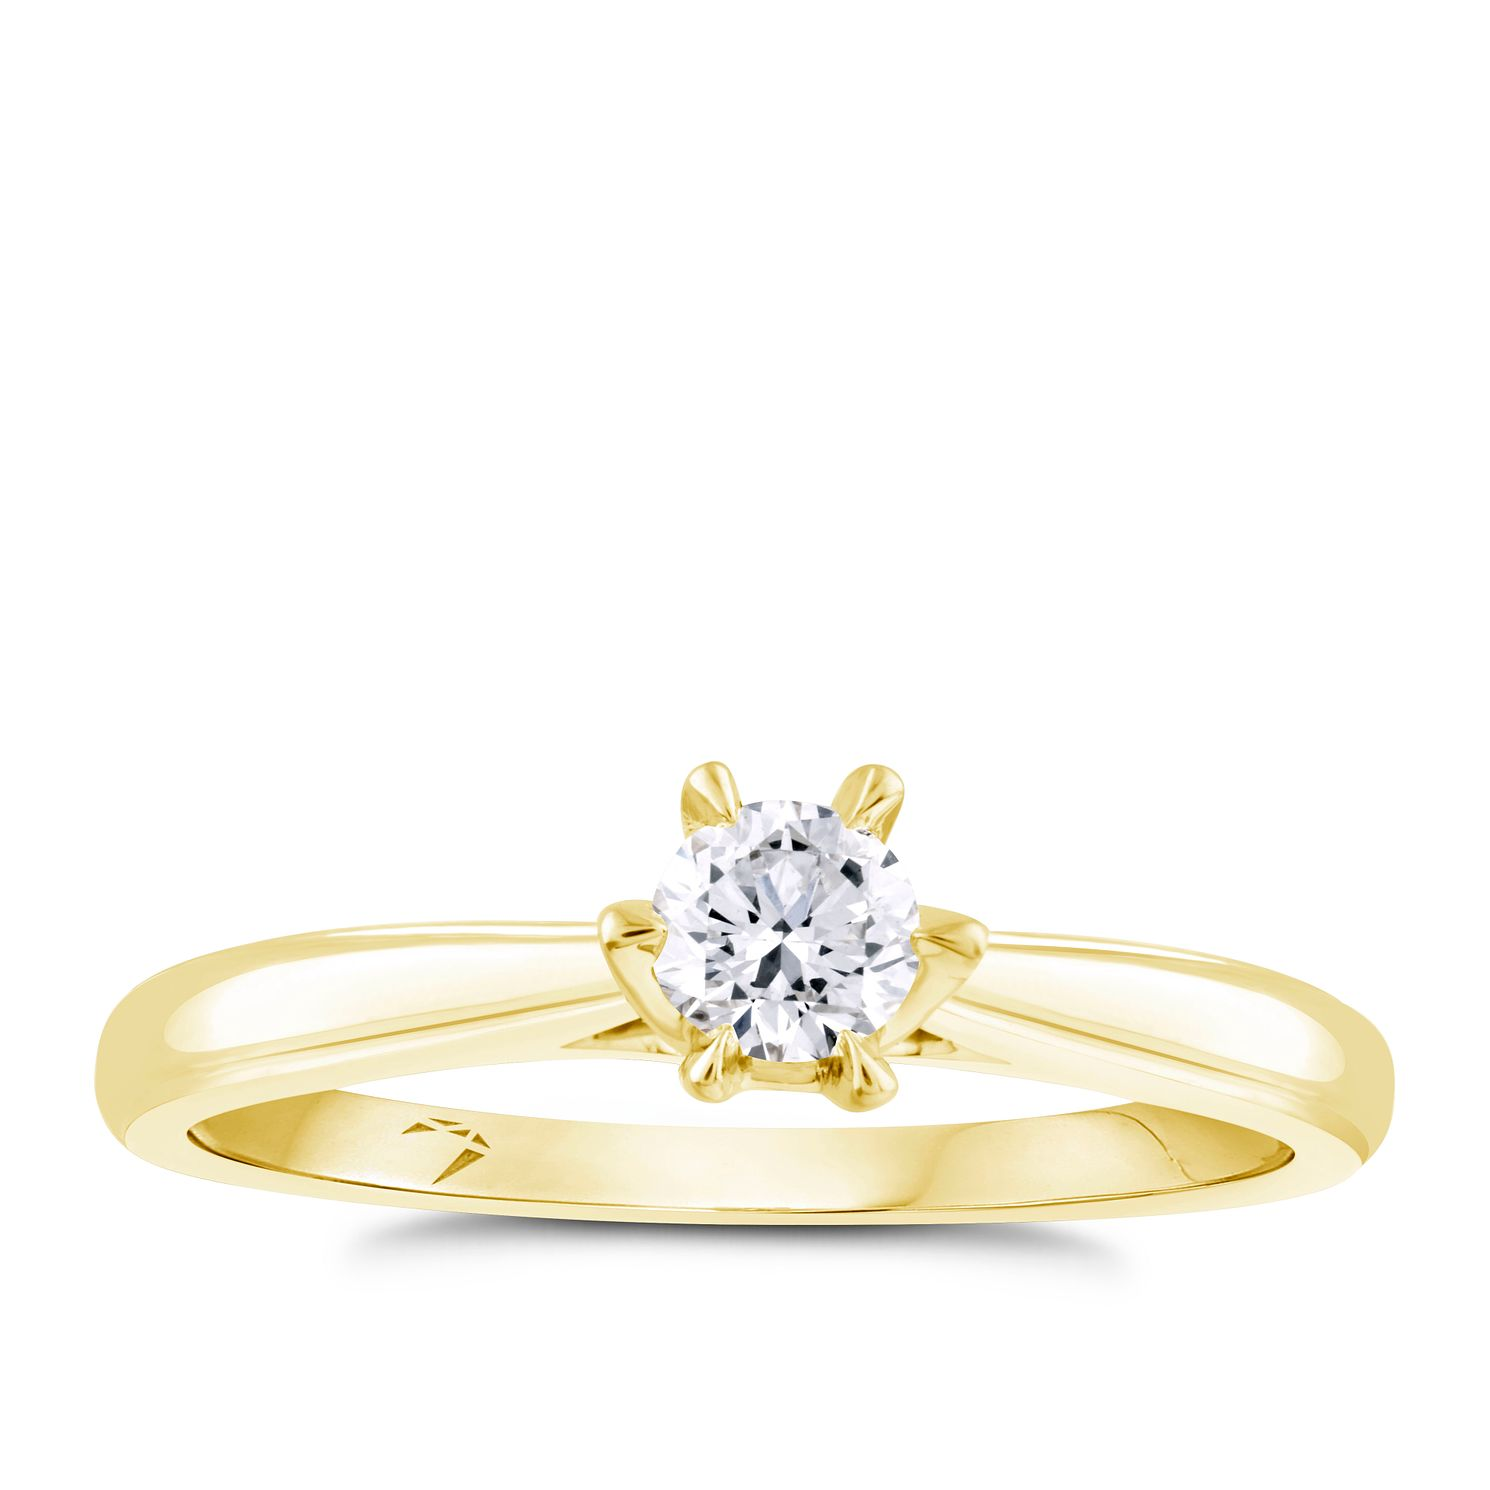 Arctic Light 18ct Yellow Gold 1/4ct Diamond Solitaire Ring - Product number 4249232